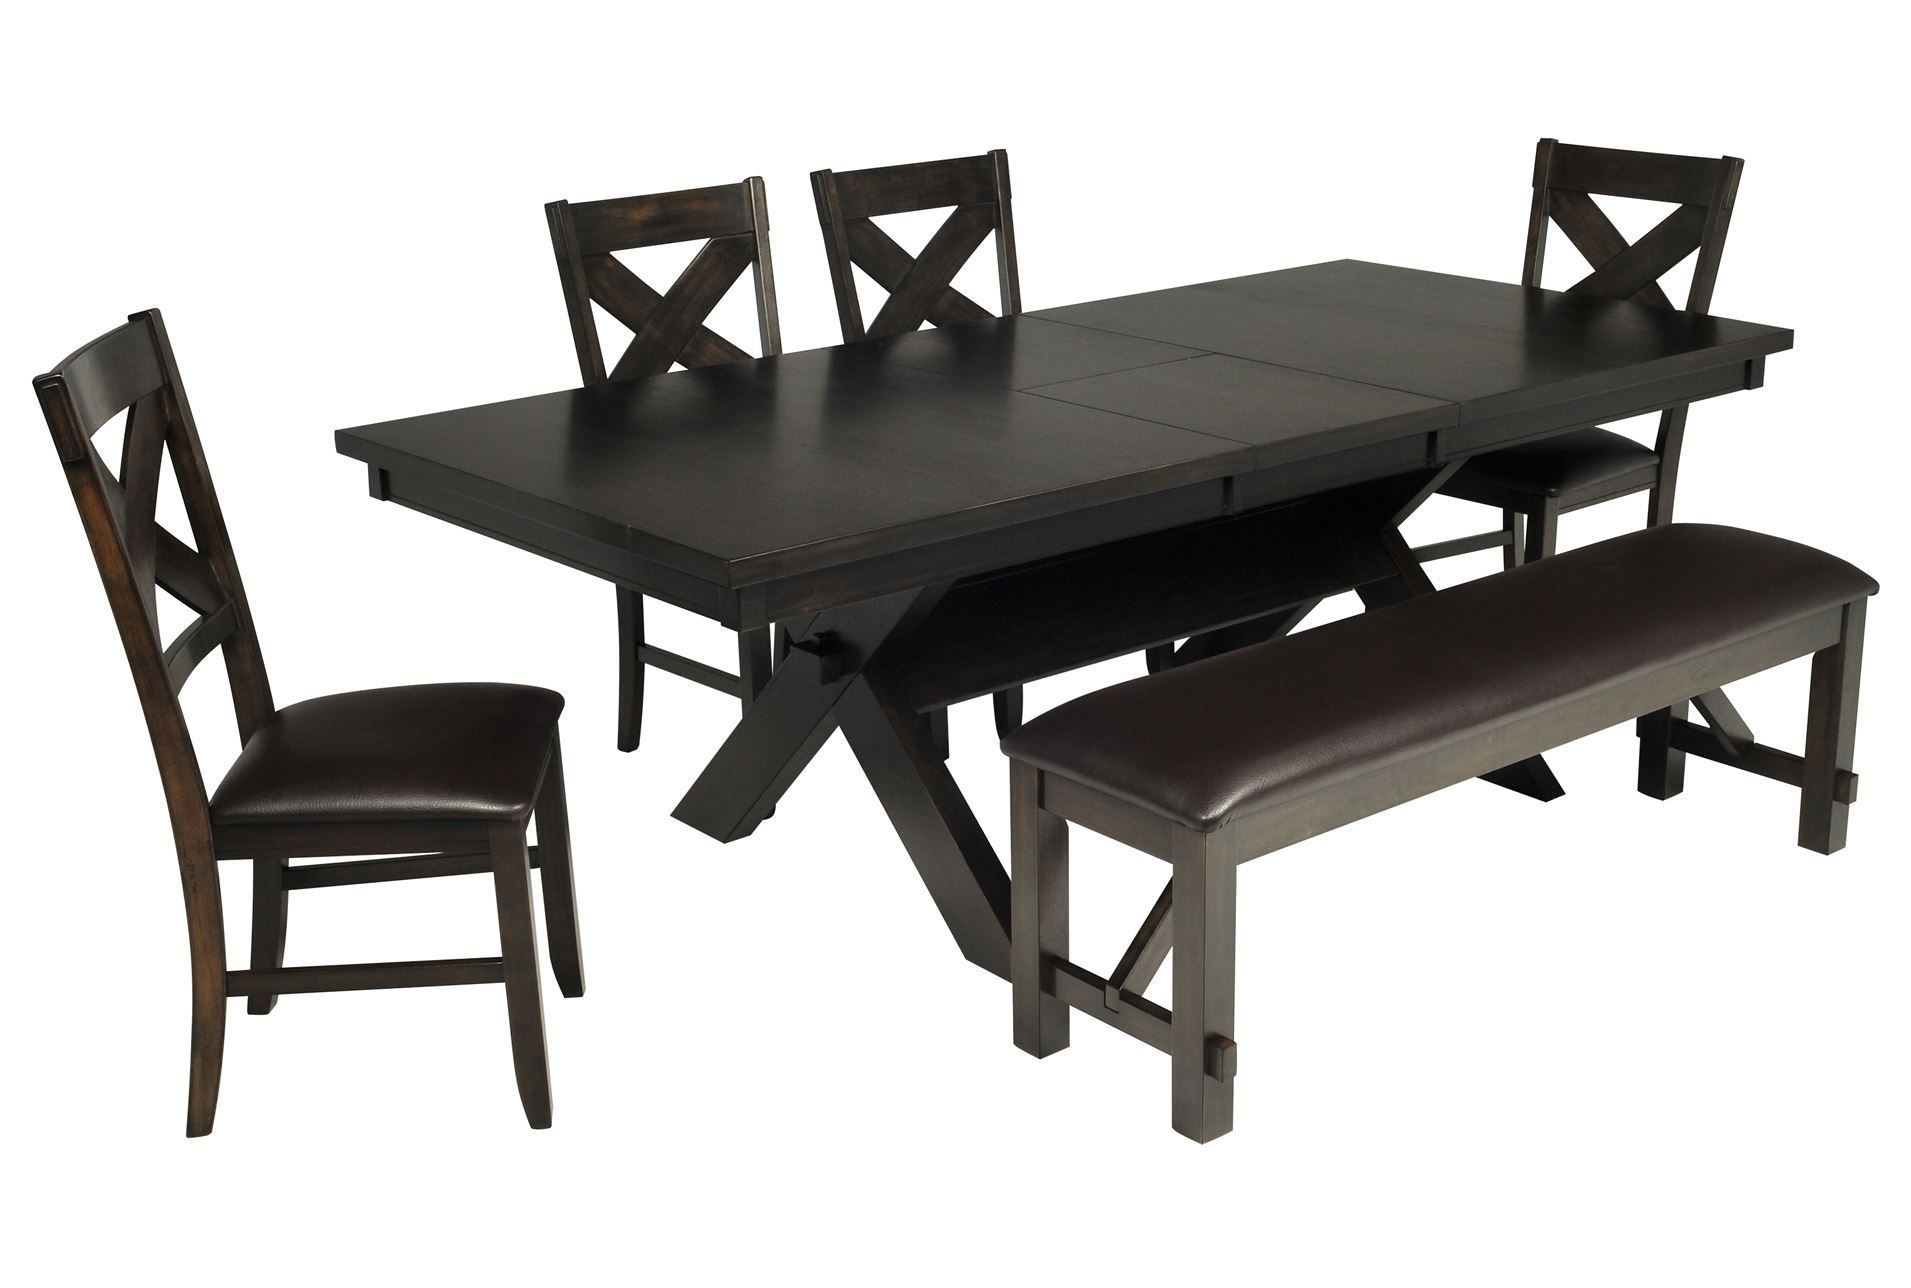 Pelennor 6 Piece Extension Dining Set | Home Decor | Pinterest Intended For Best And Newest Pelennor Extension Dining Tables (Image 12 of 20)